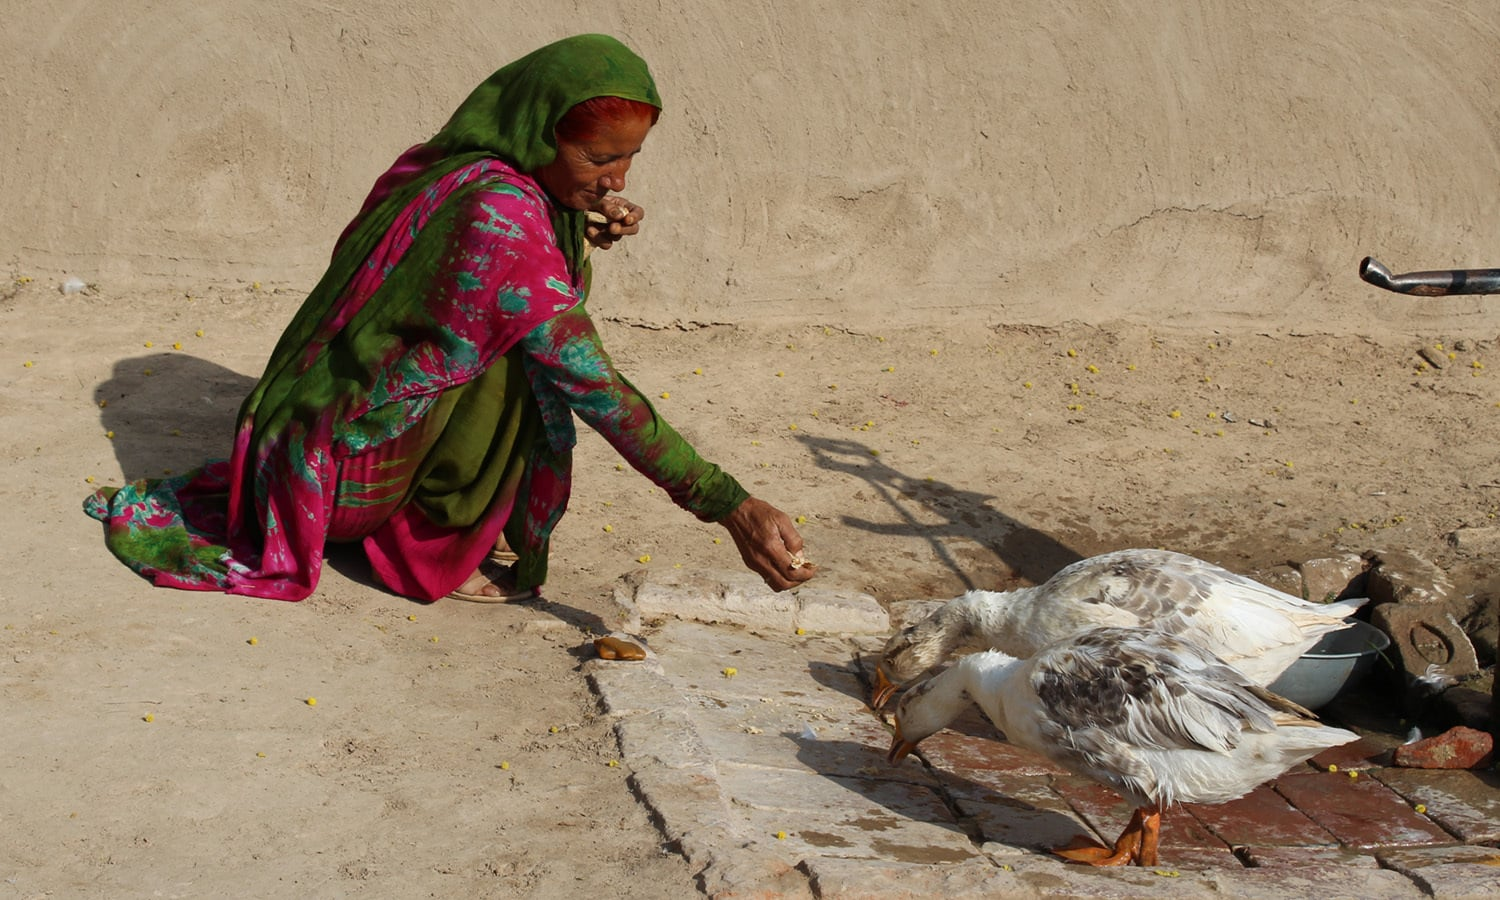 A local woman feeds ducks.